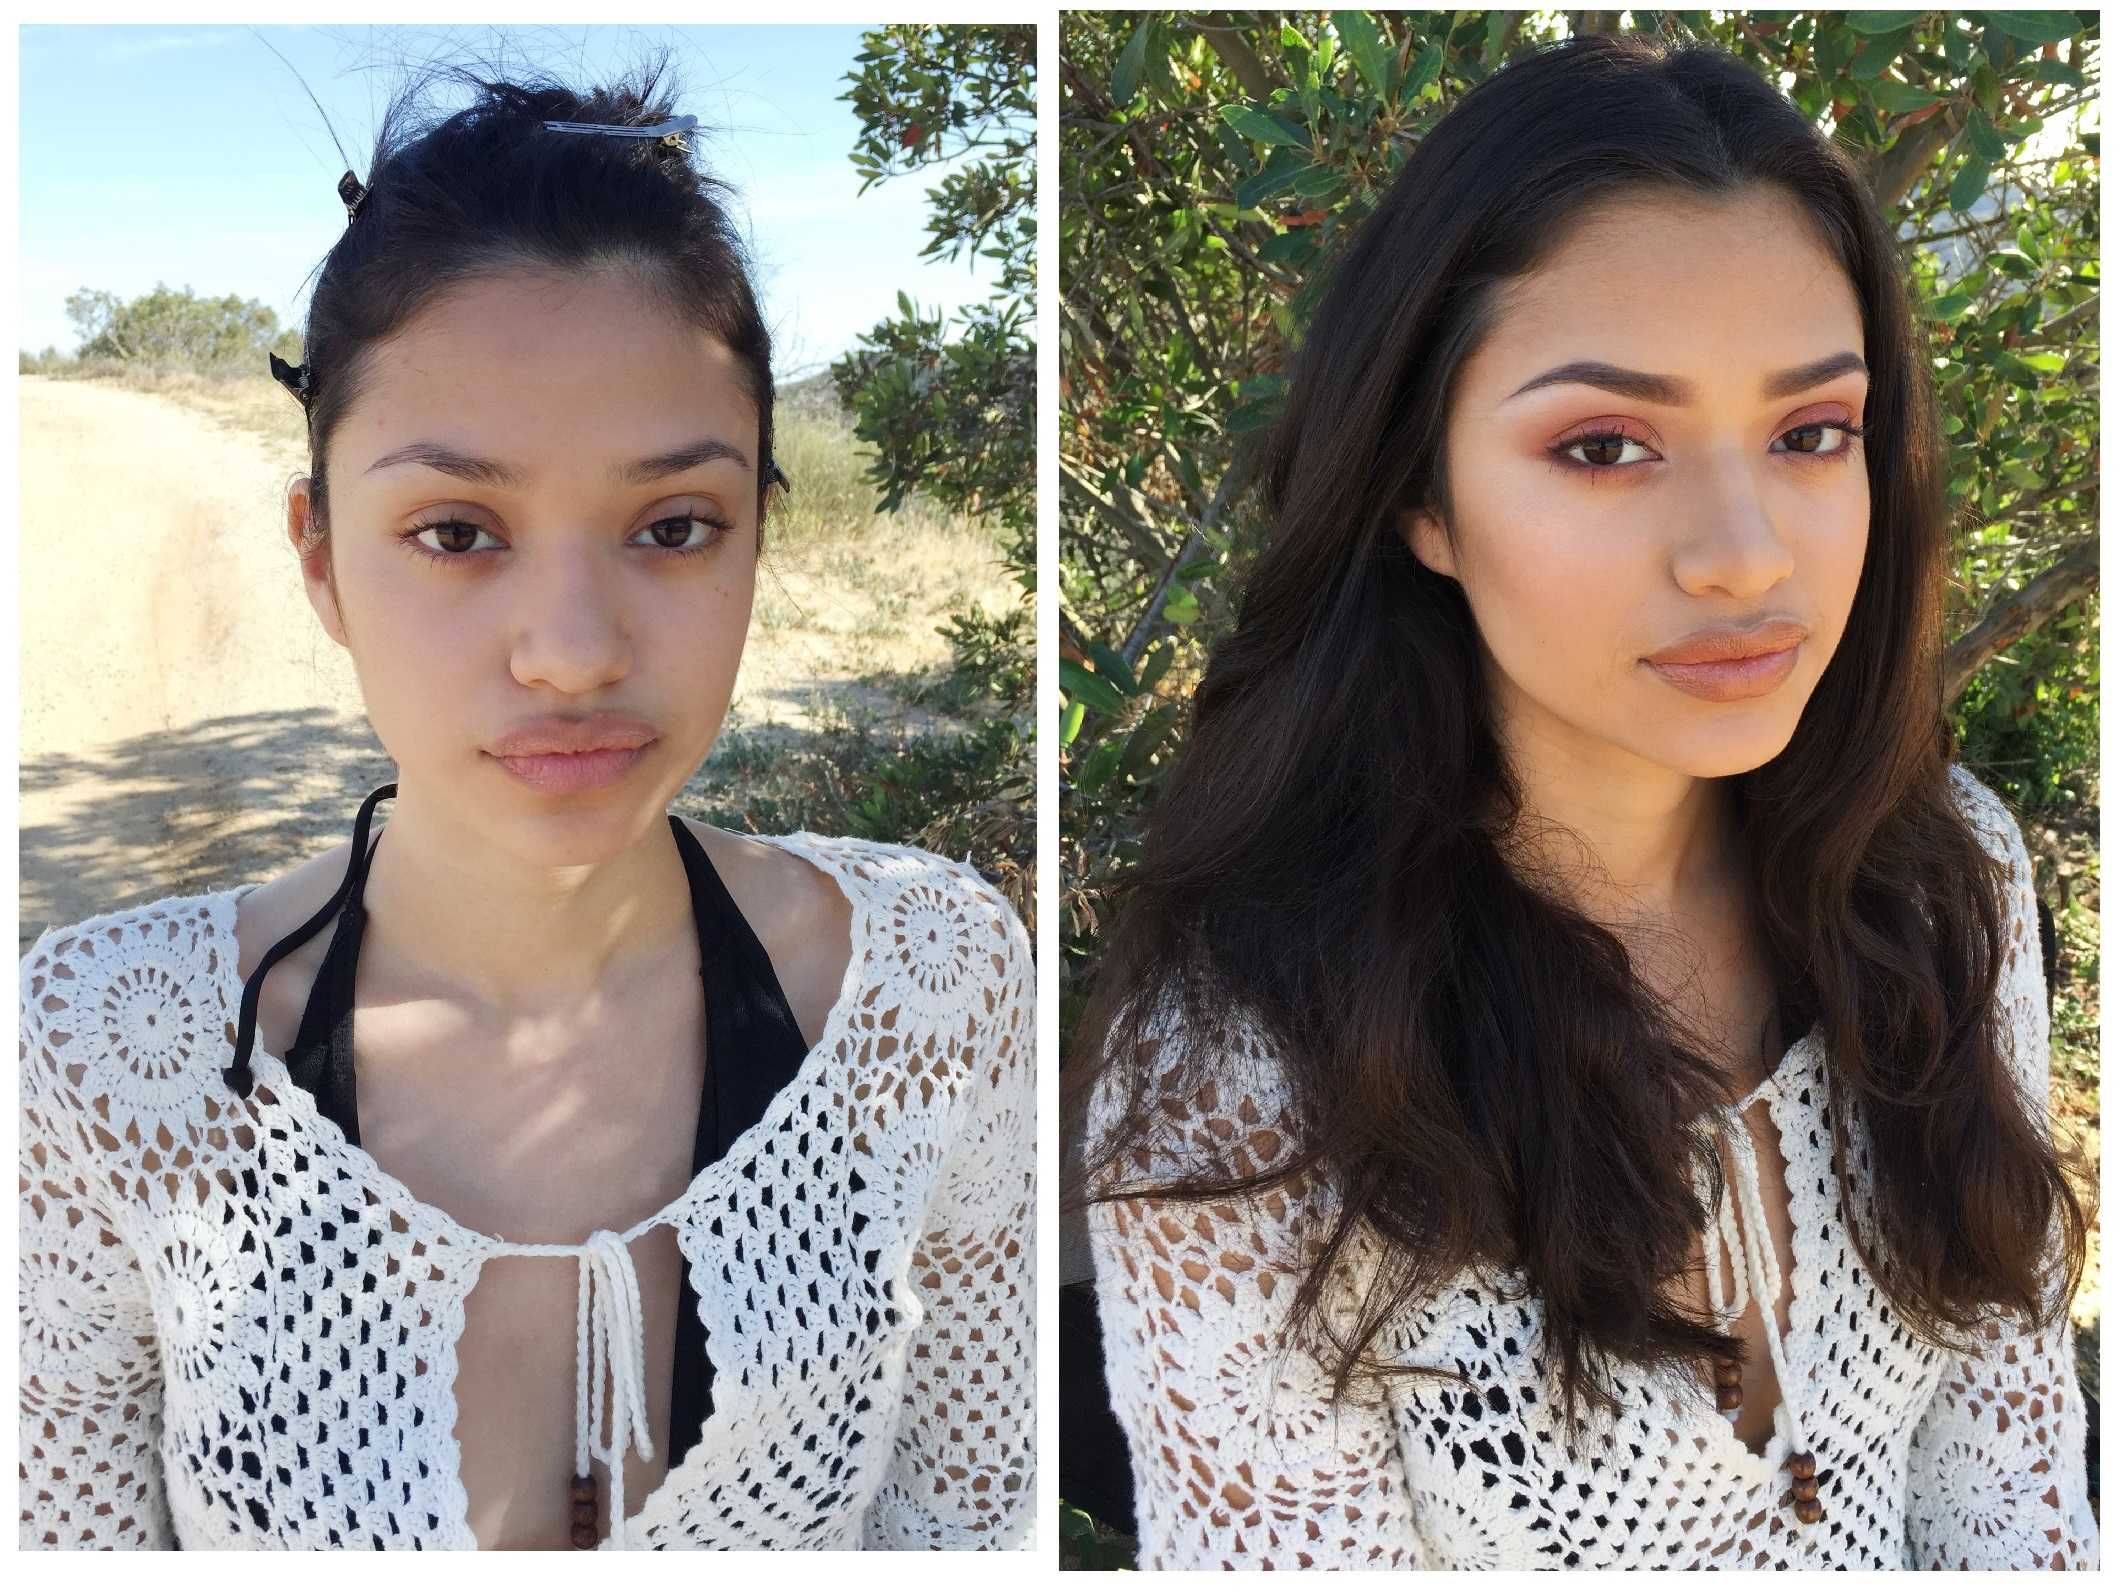 Makeup for Tara Scoville on model Vanessa with TWO Mgmt